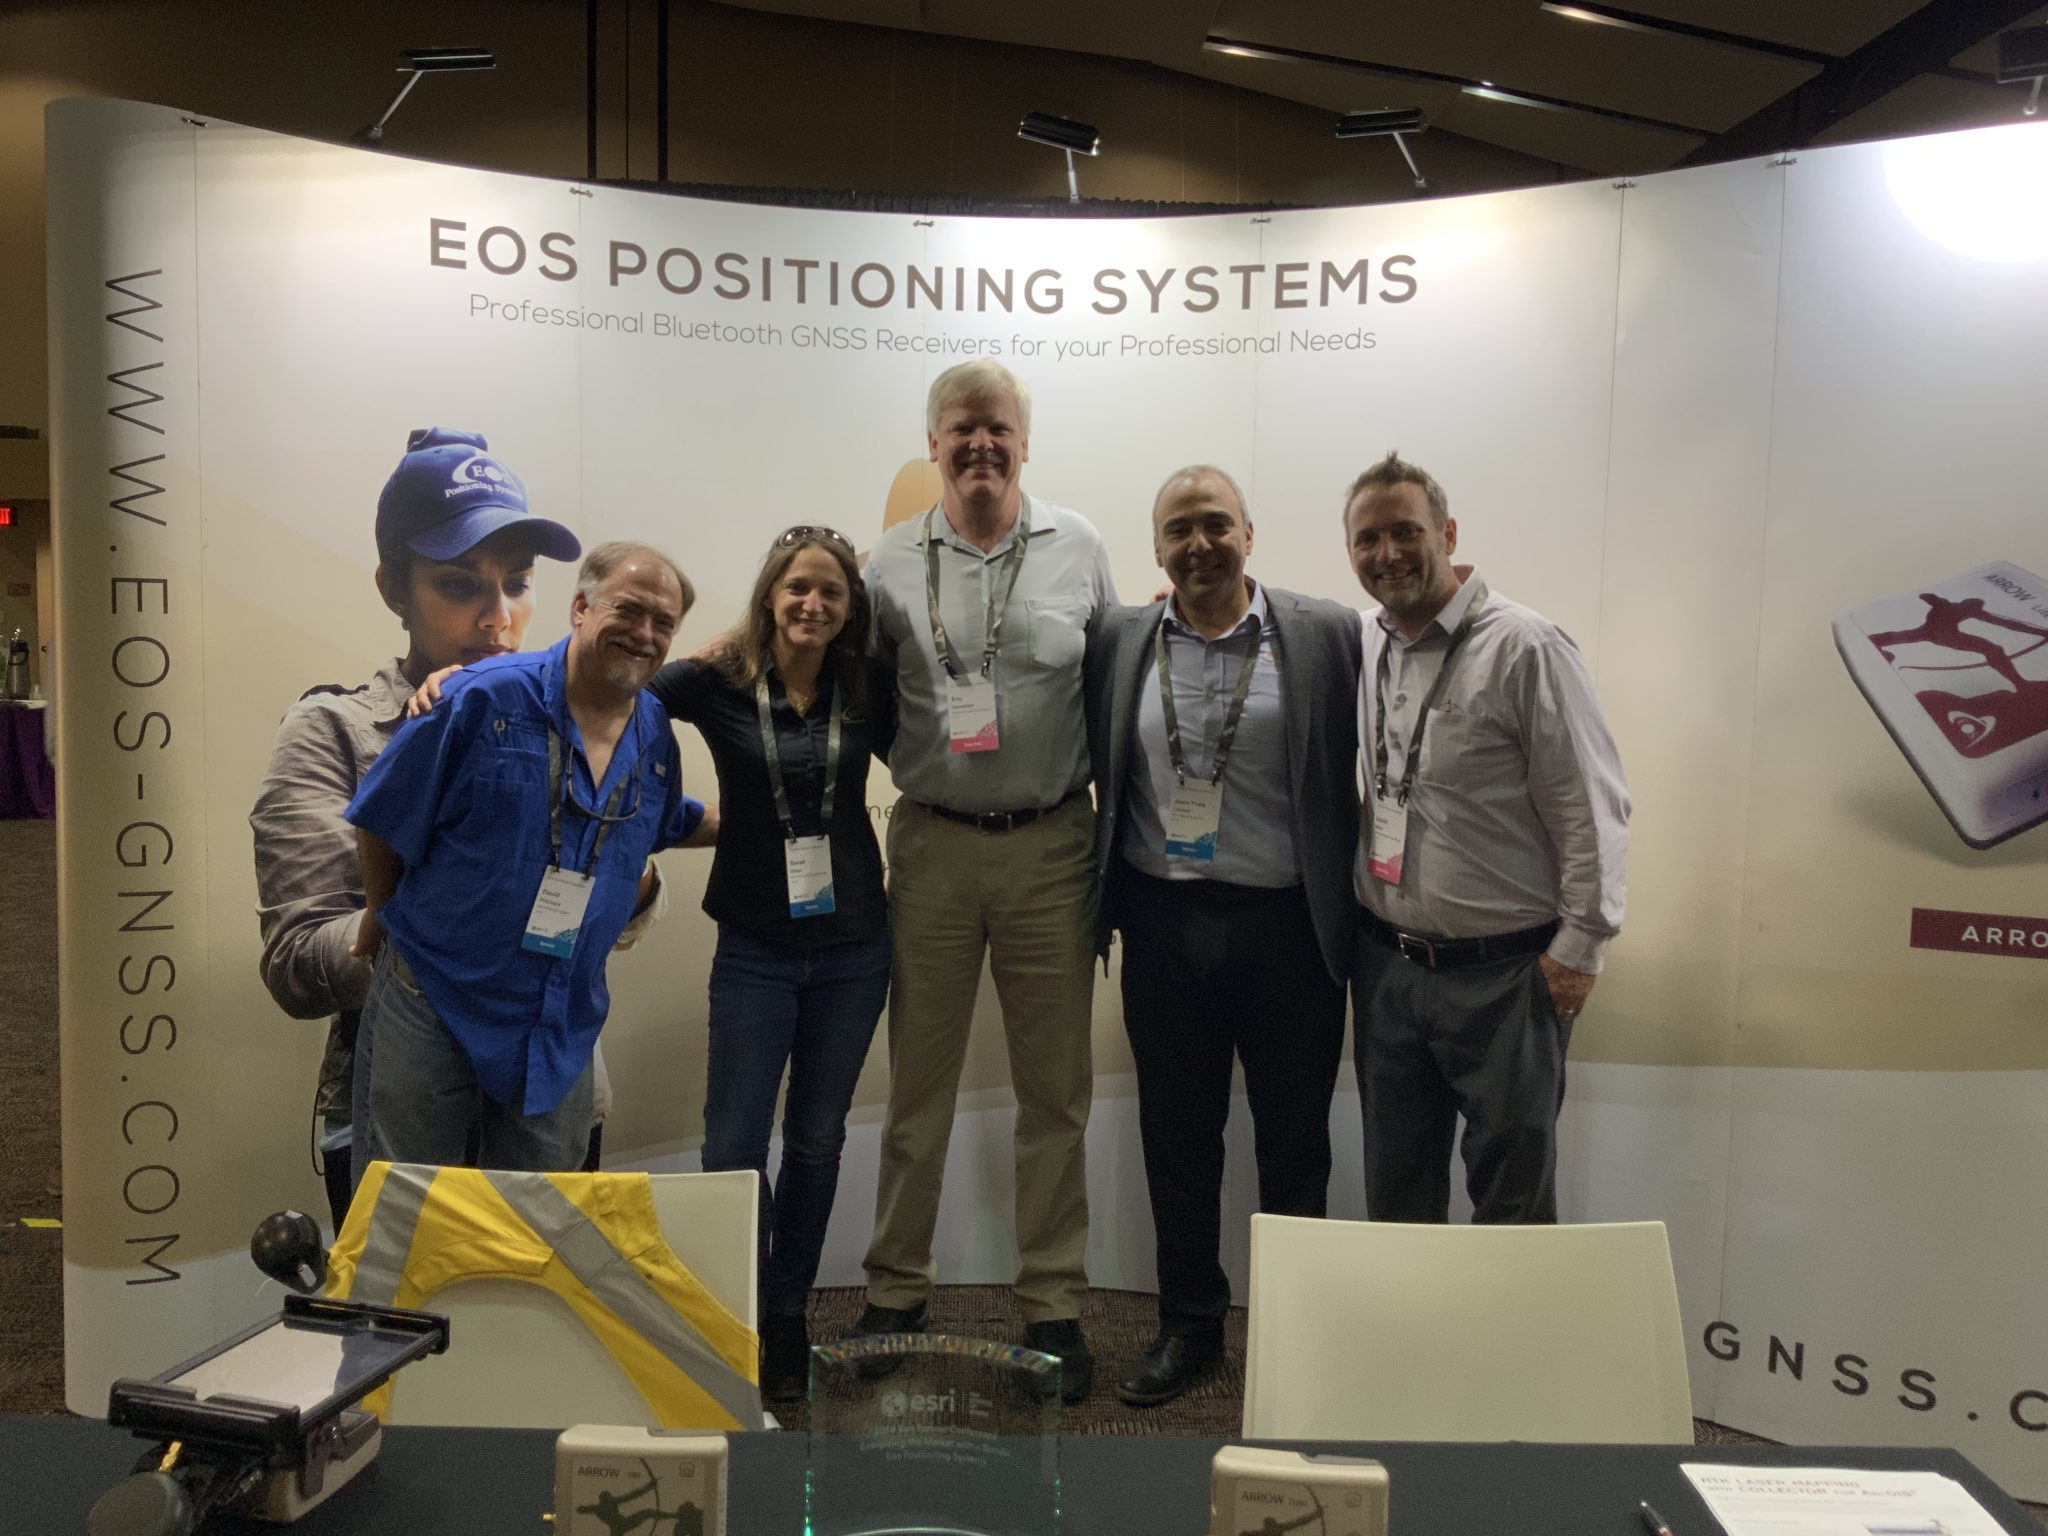 IMAGE - PRESS RELEASE - 2019 EPC AWARD - BOOTH 2019-03-04 19.11.49-1